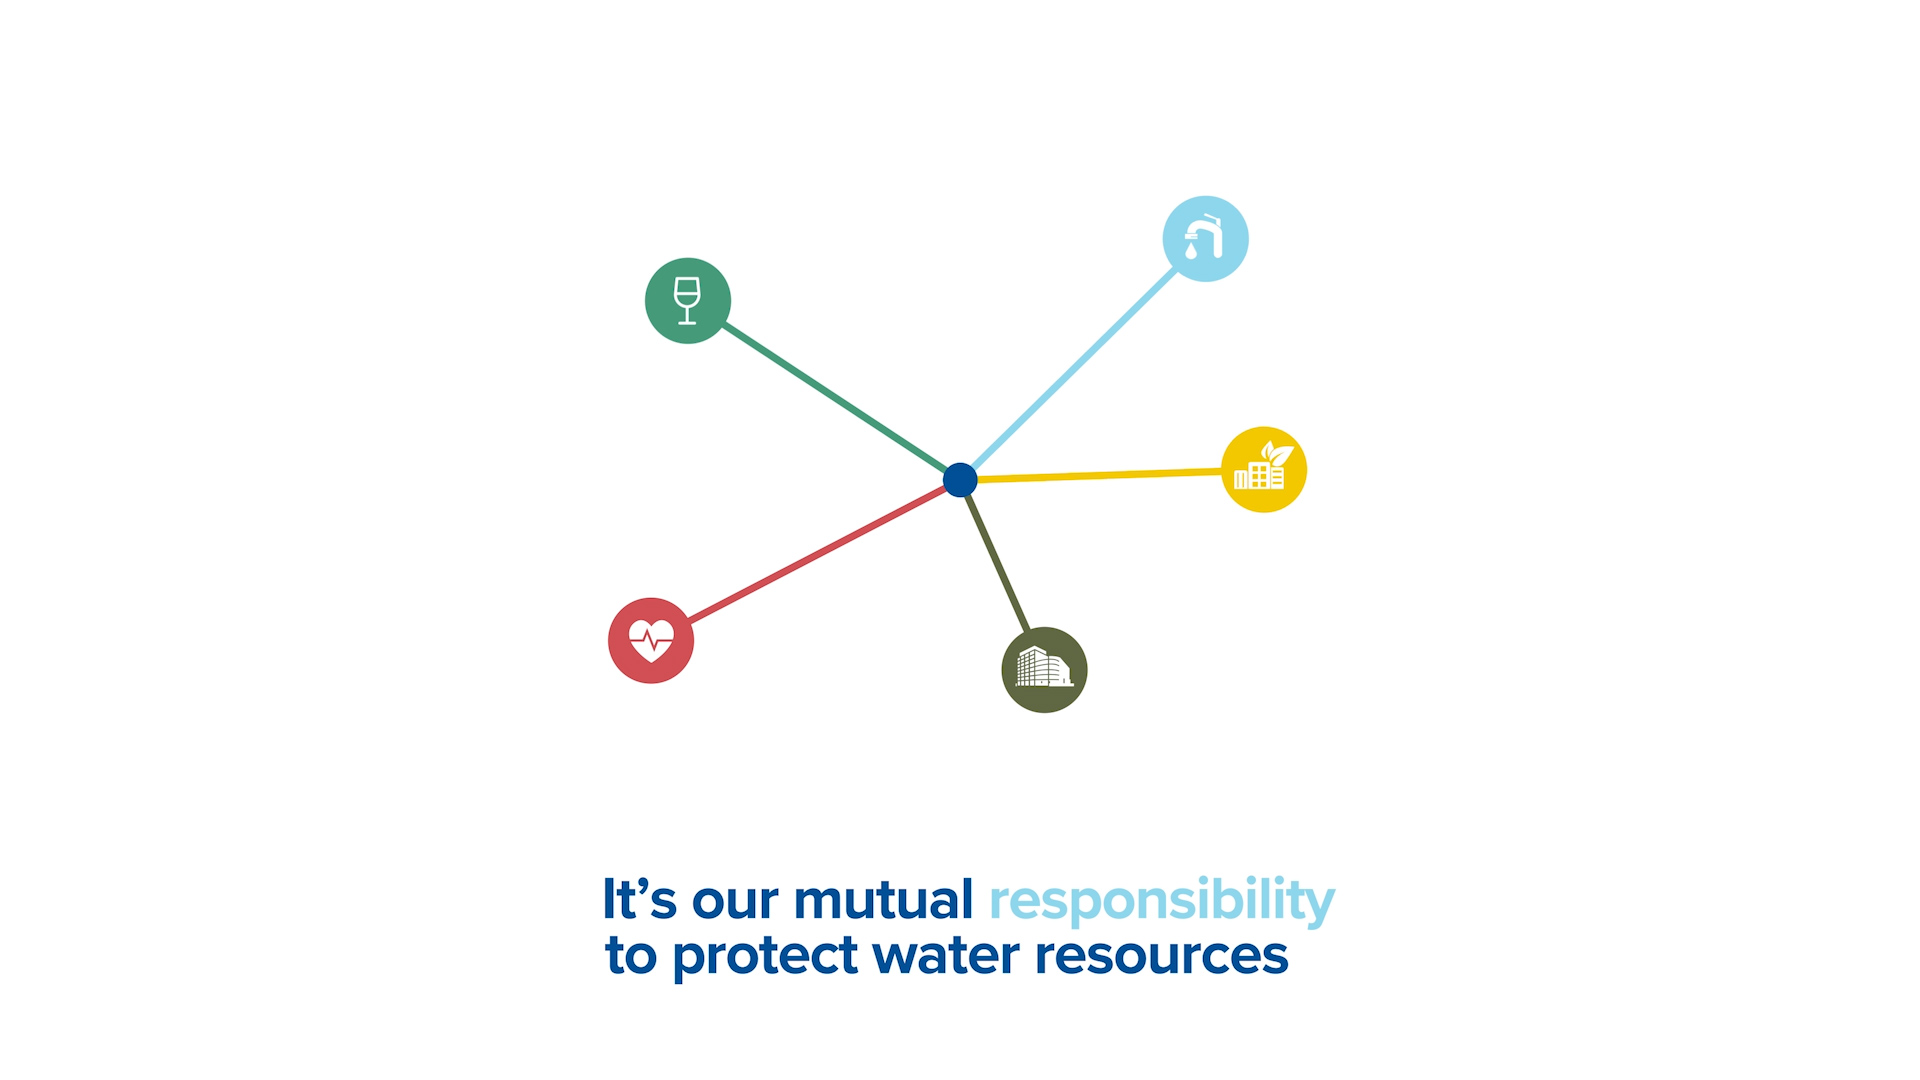 Make water count